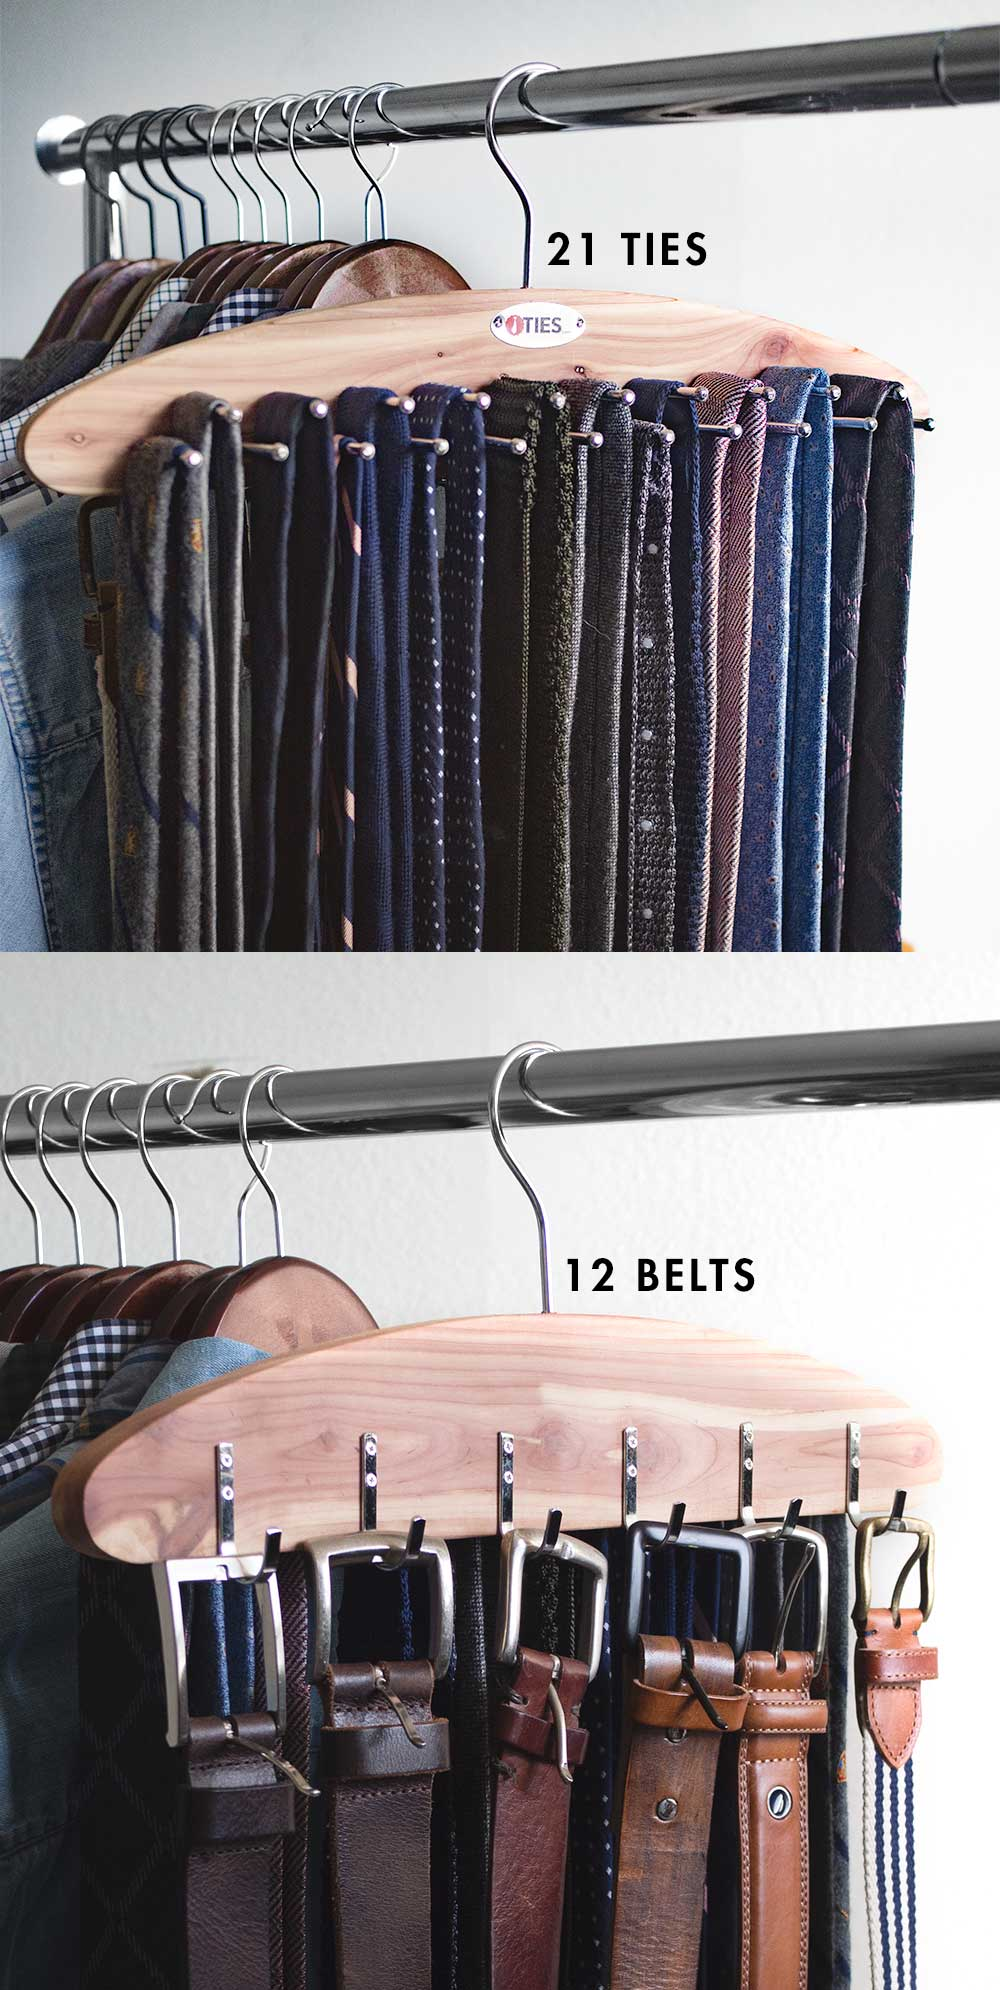 Horizontal hanging tie rack from Ties.com: closet organization ideas